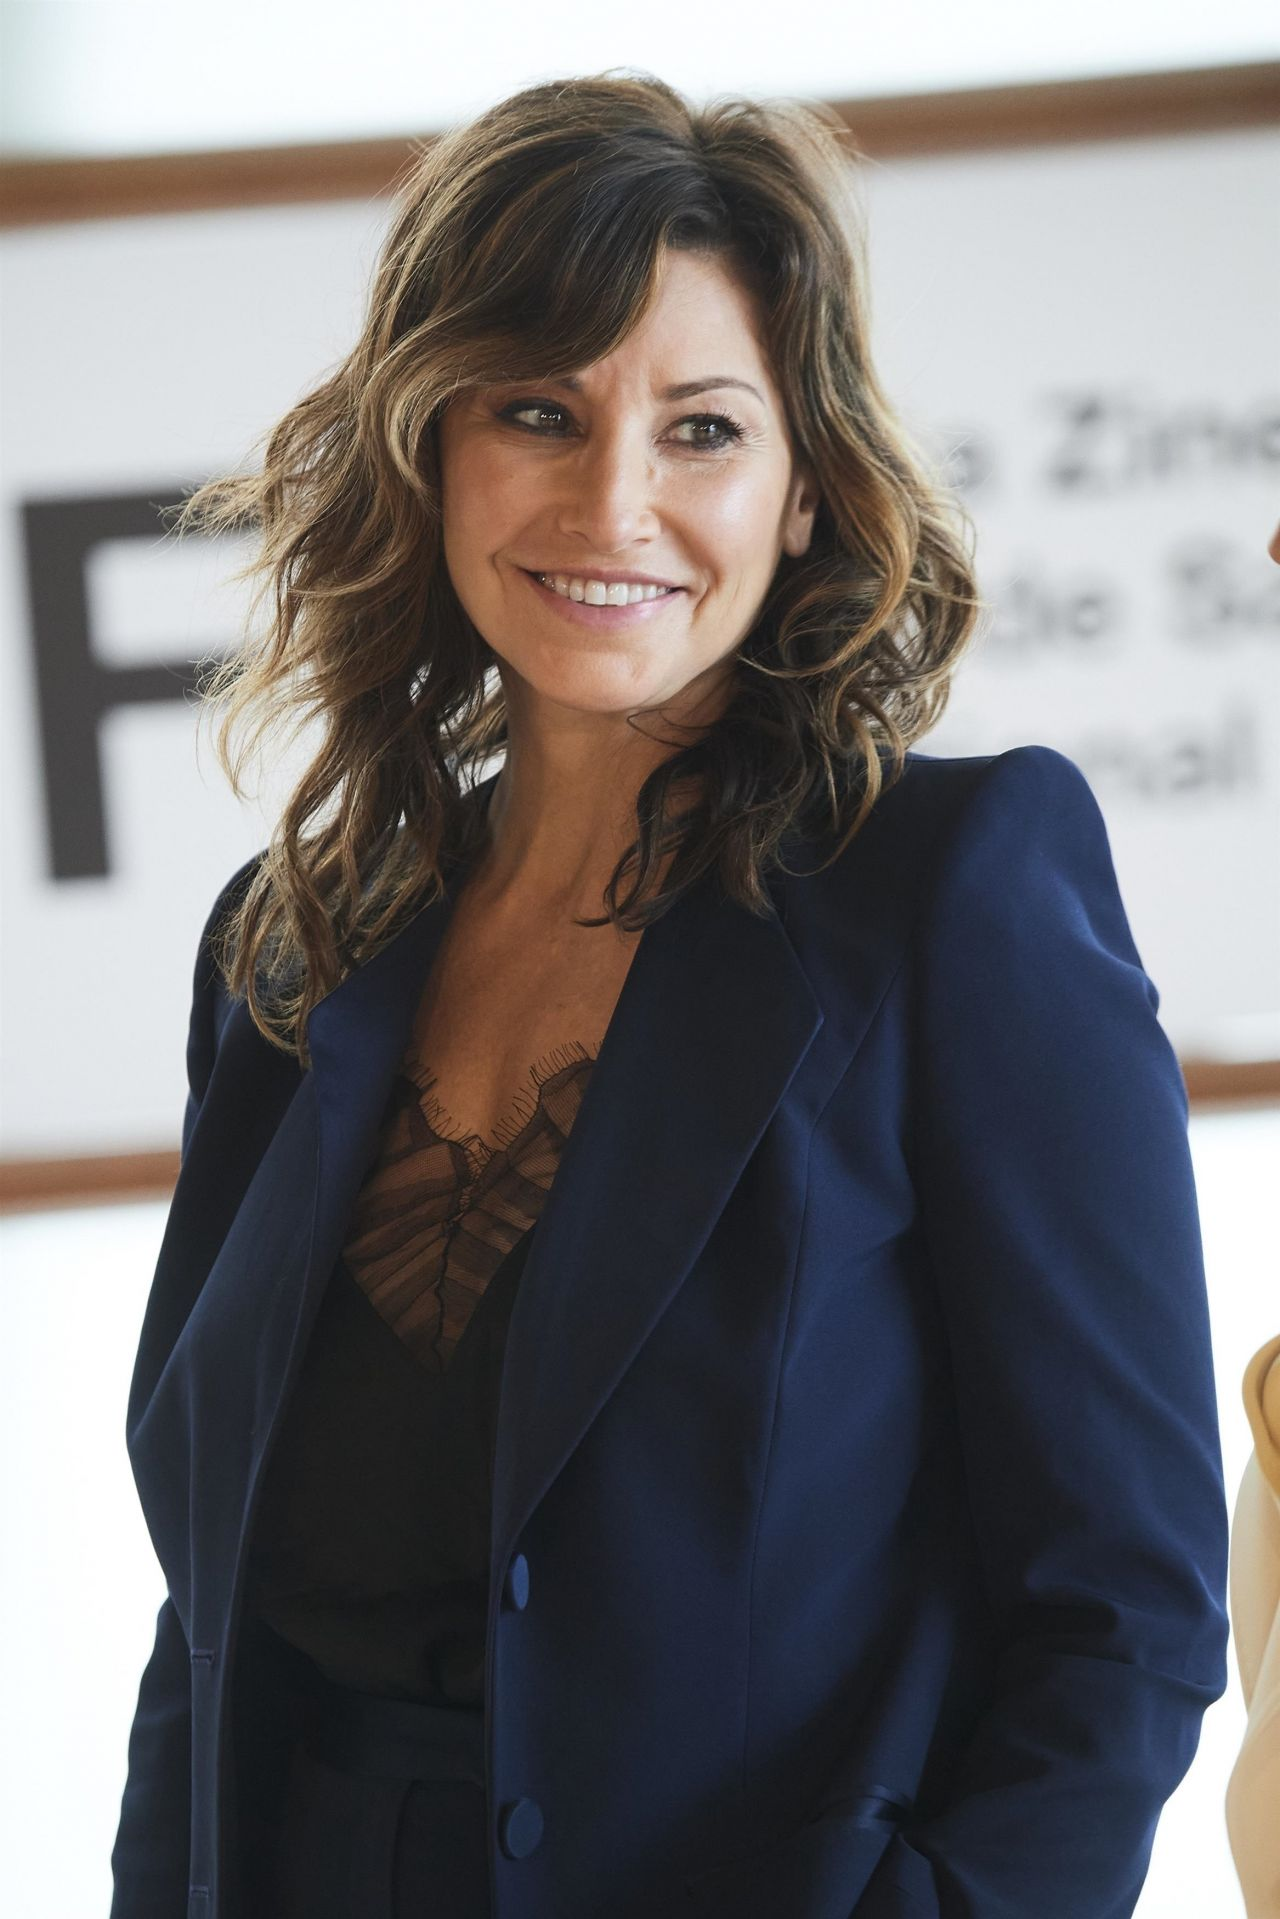 Gina Gershon Style Clothes Outfits And Fashion Celebmafia We tweet to get celeb follows; gina gershon style clothes outfits